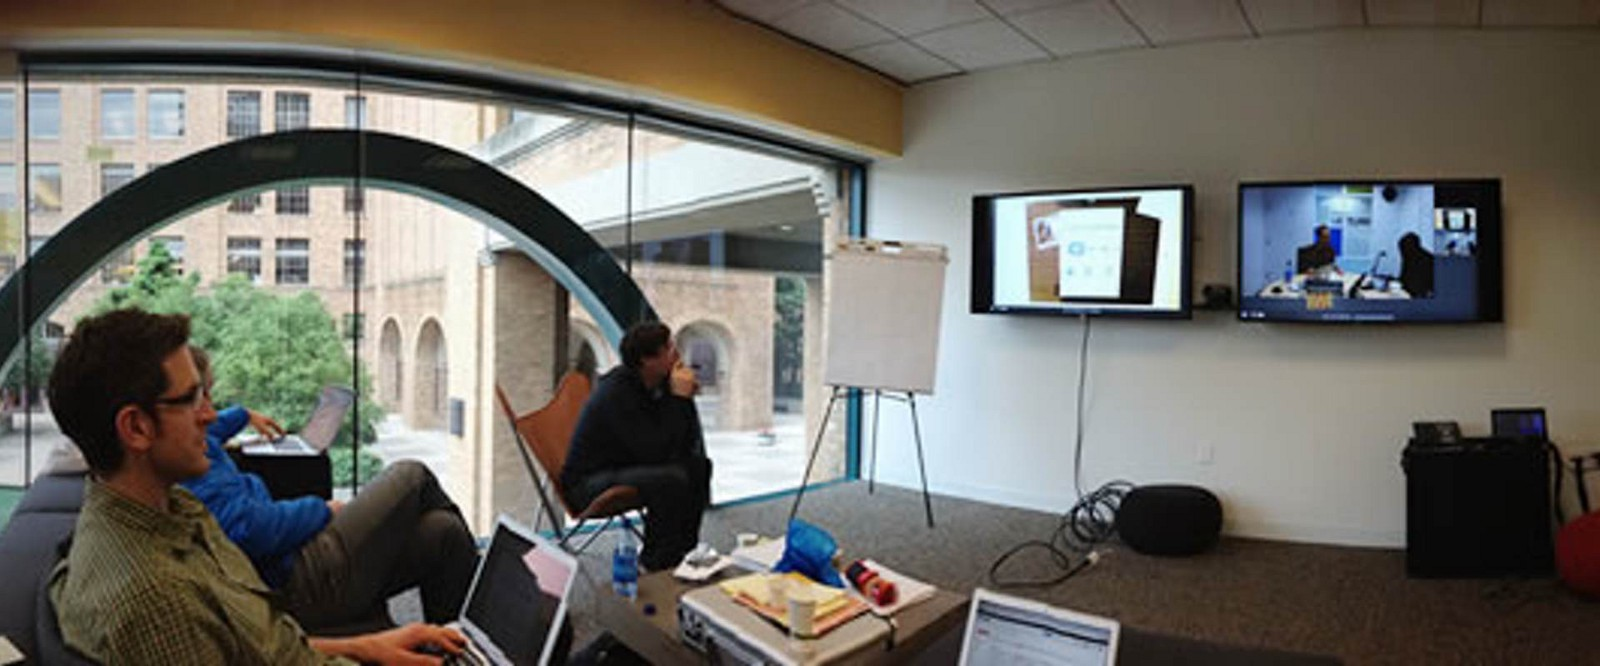 group watching a usability test together